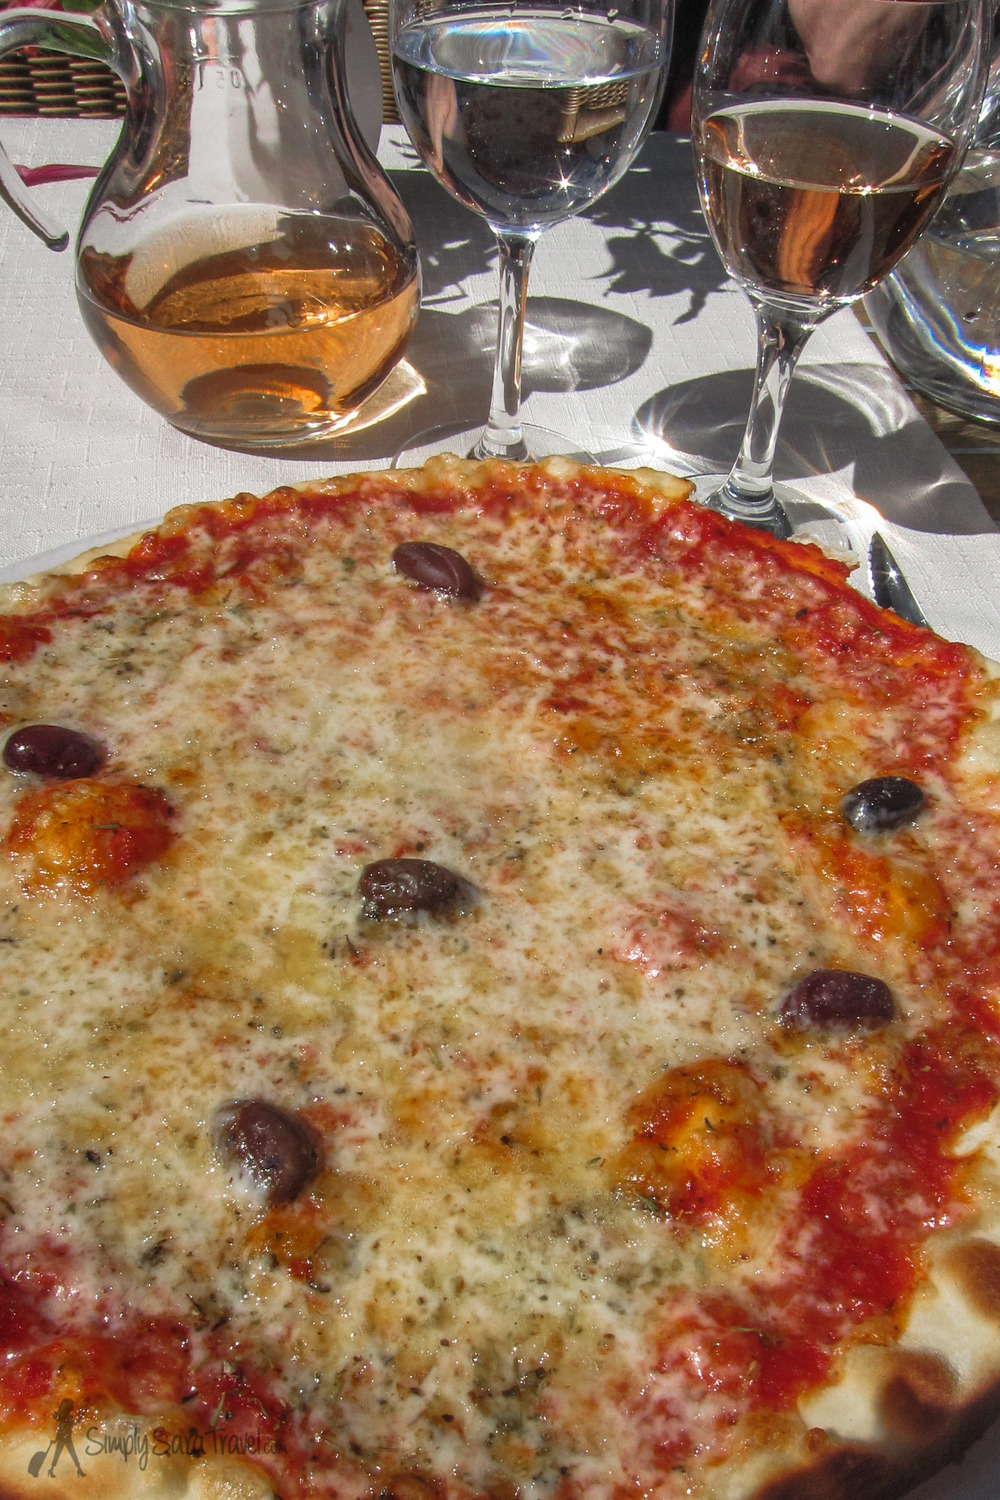 Michael has gone as far as to declare the pizza in Antibes, France the best he's ever had - a statement that really sets off my fist-pumping home state in a fit of anger.